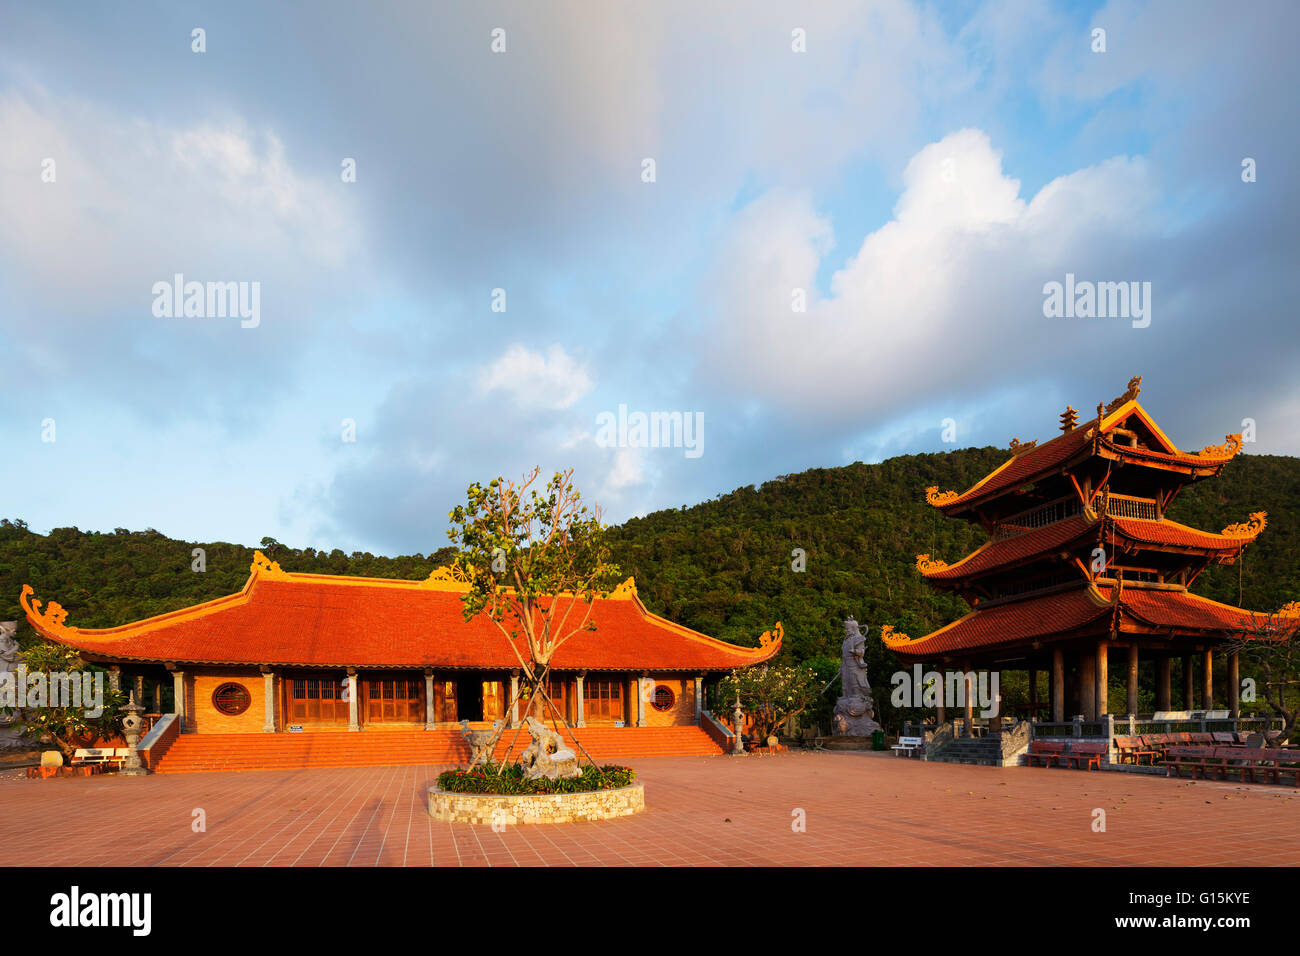 Thien Vien Truc Lam Ho temple, Phu Quoc Island, Vietnam, Indochina, Southeast Asia, Asia - Stock Image